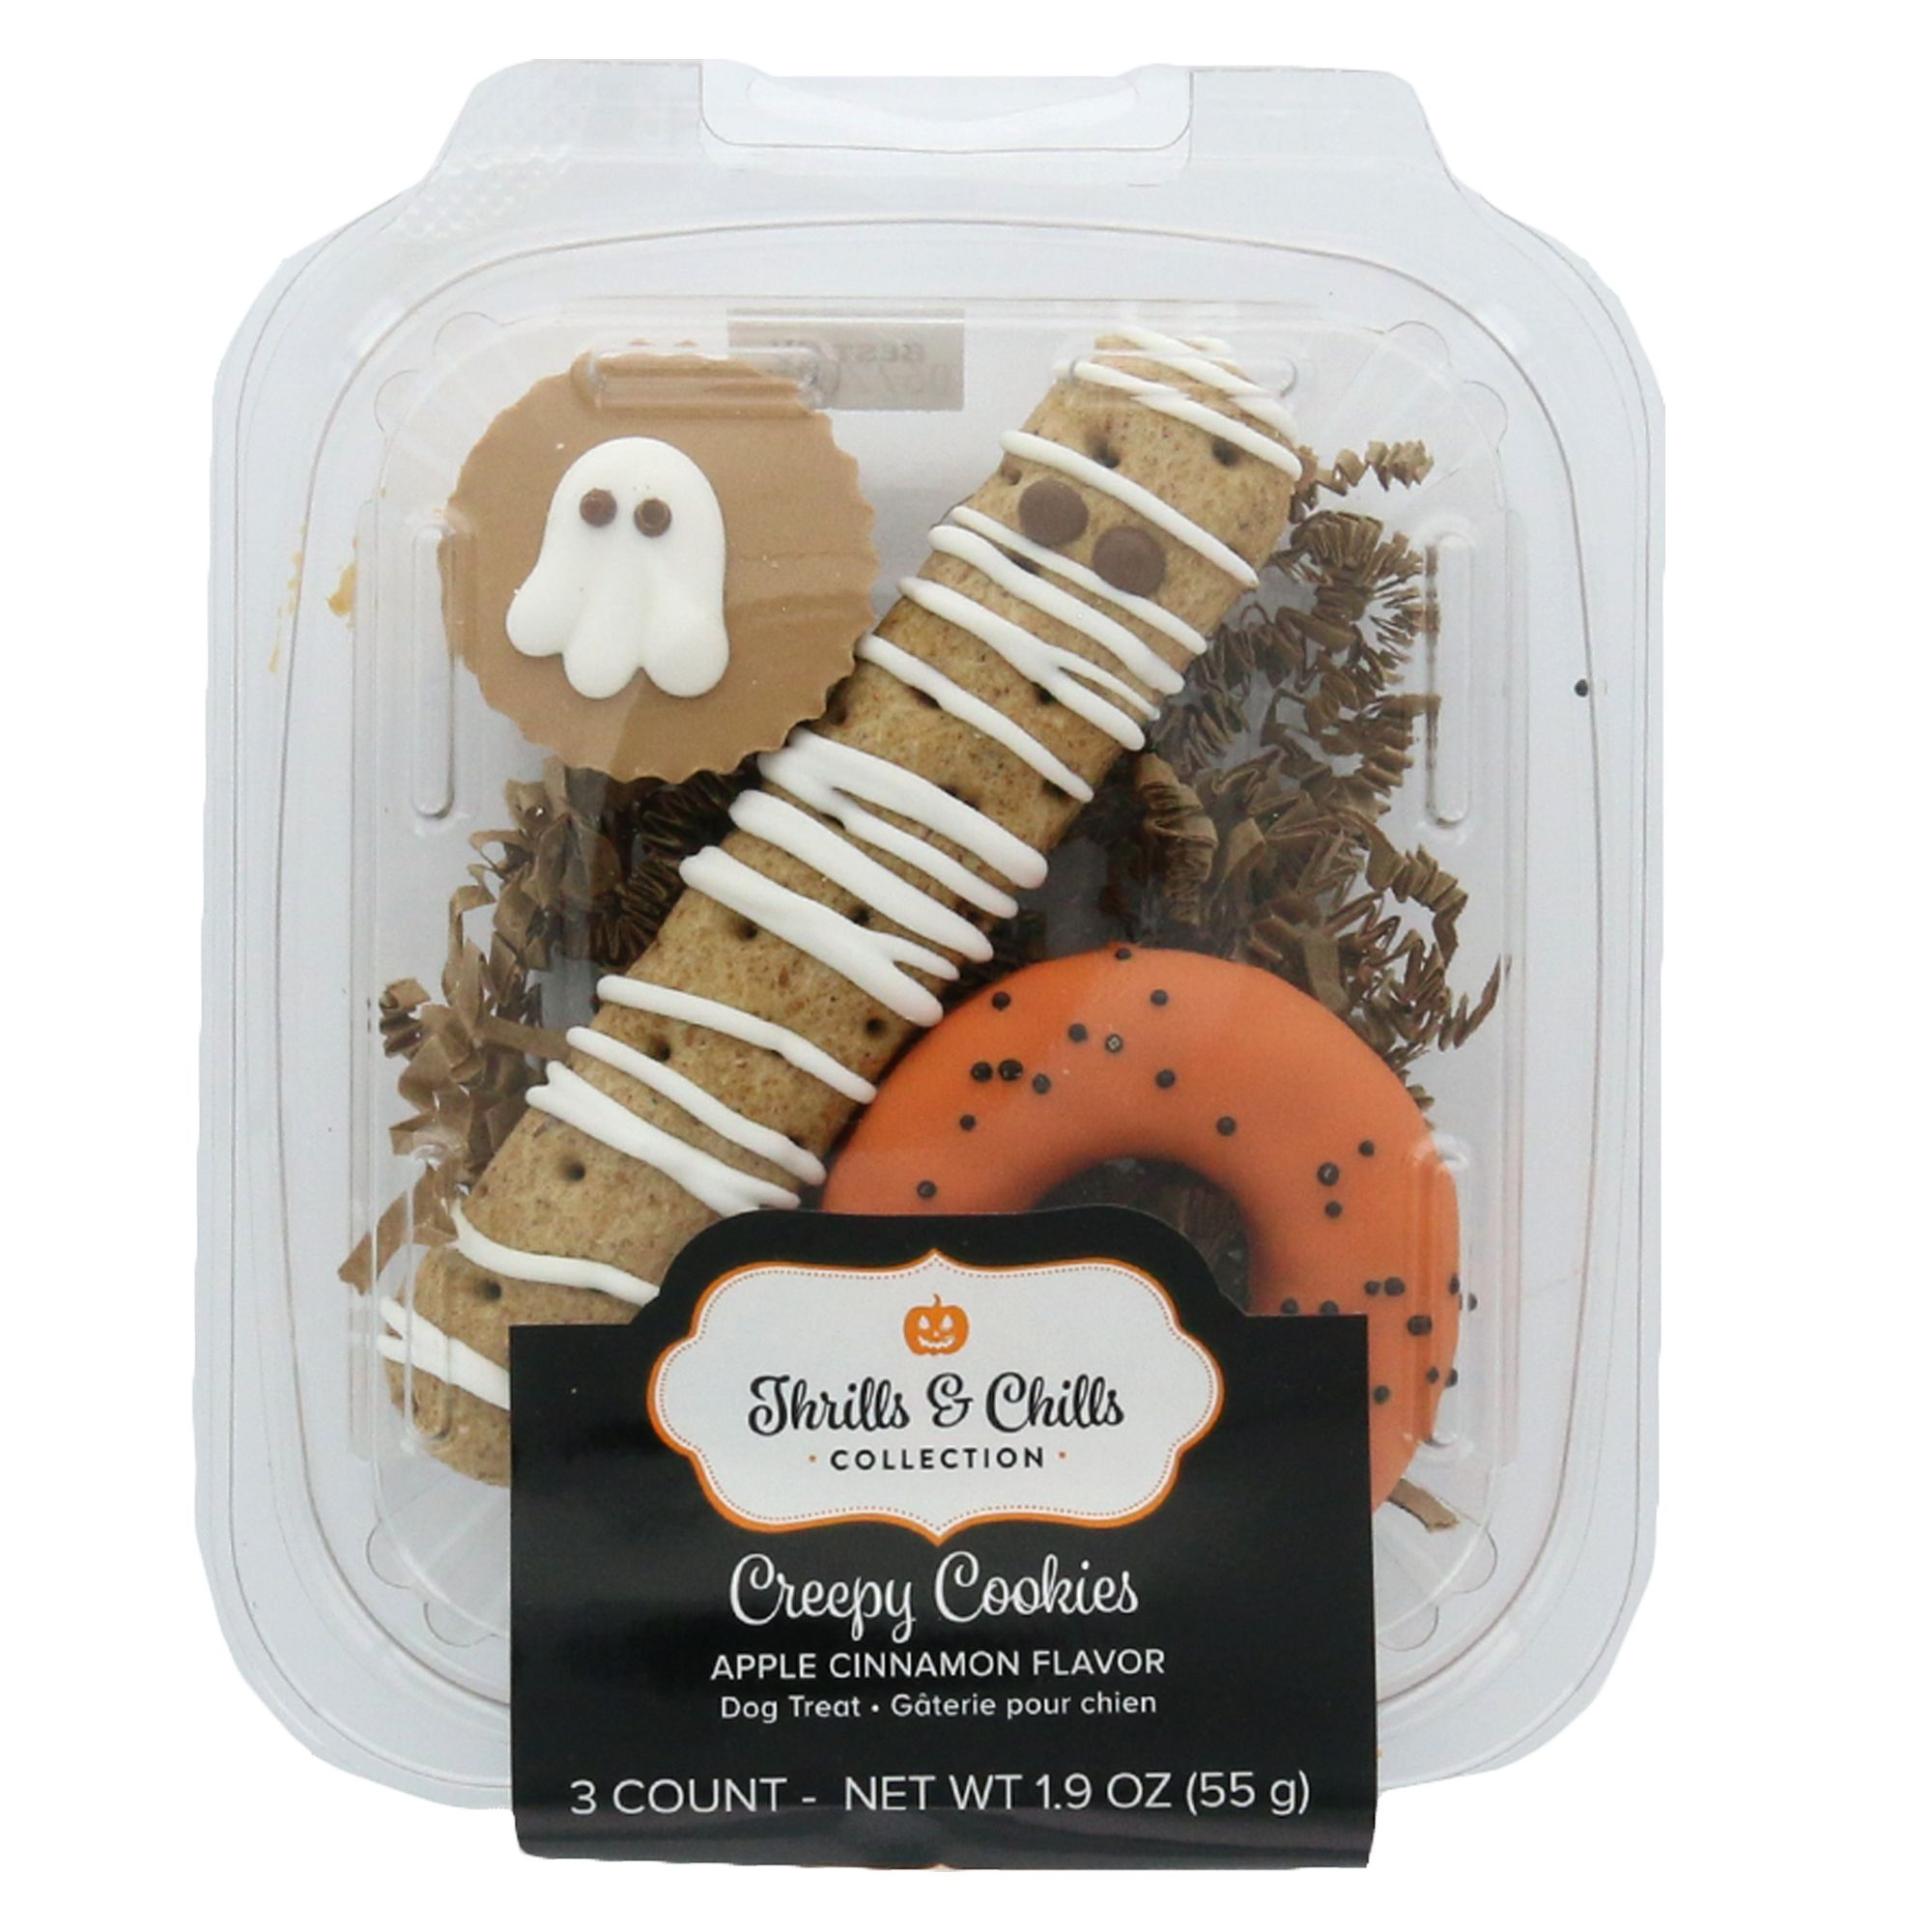 Thrills and Chills Pet Halloween Creepy Cookies Gift Pack Dog Treat size: 3 Count, Thrills & Chills, Apple Cinnamon, Biscuit, Wheat Flour 5268153